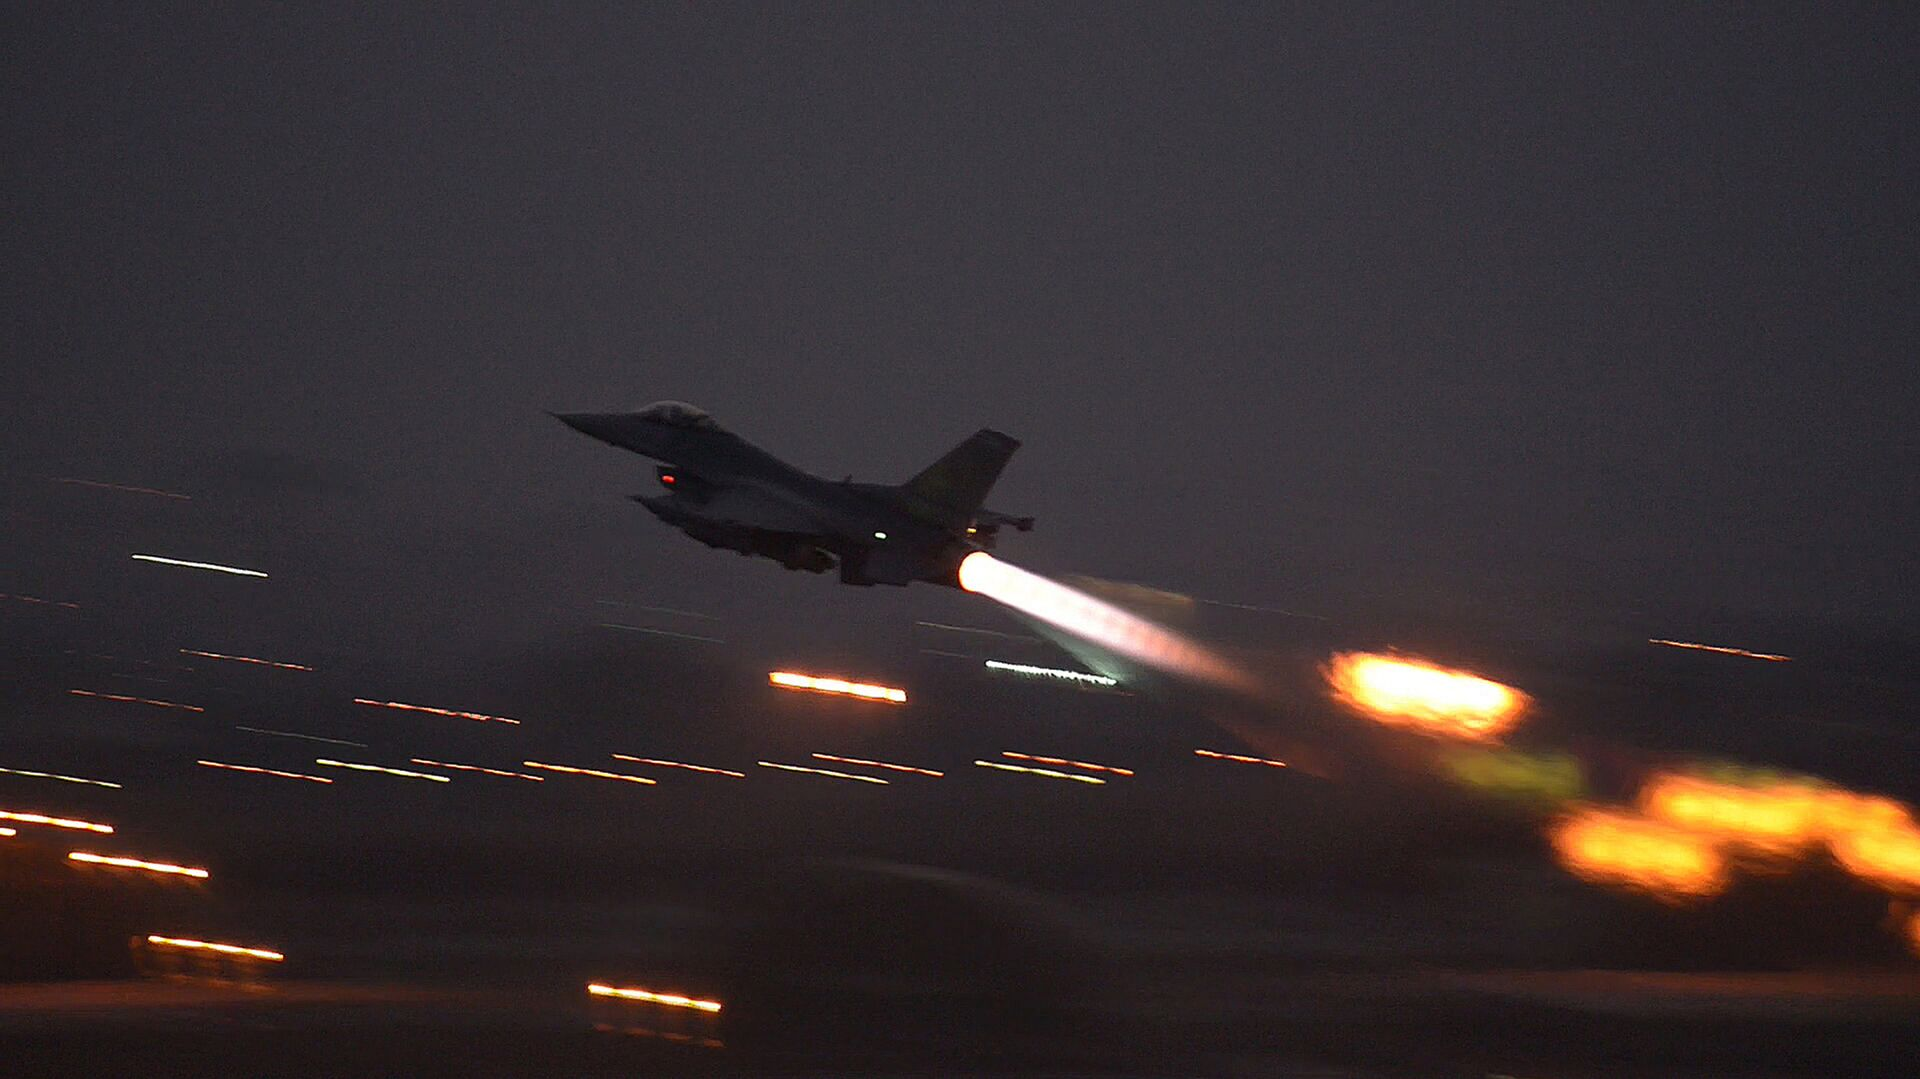 In this image provided by the U.S. Air Force, an F-16 Fighting Falcon takes off from Incirlik Air Base, Turkey, as the U.S. on Wednesday, Aug. 12, 2015, launched its first airstrikes by Turkey-based F-16 fighter jets against Islamic State targets in Syria - Sputnik Mundo, 1920, 12.02.2021